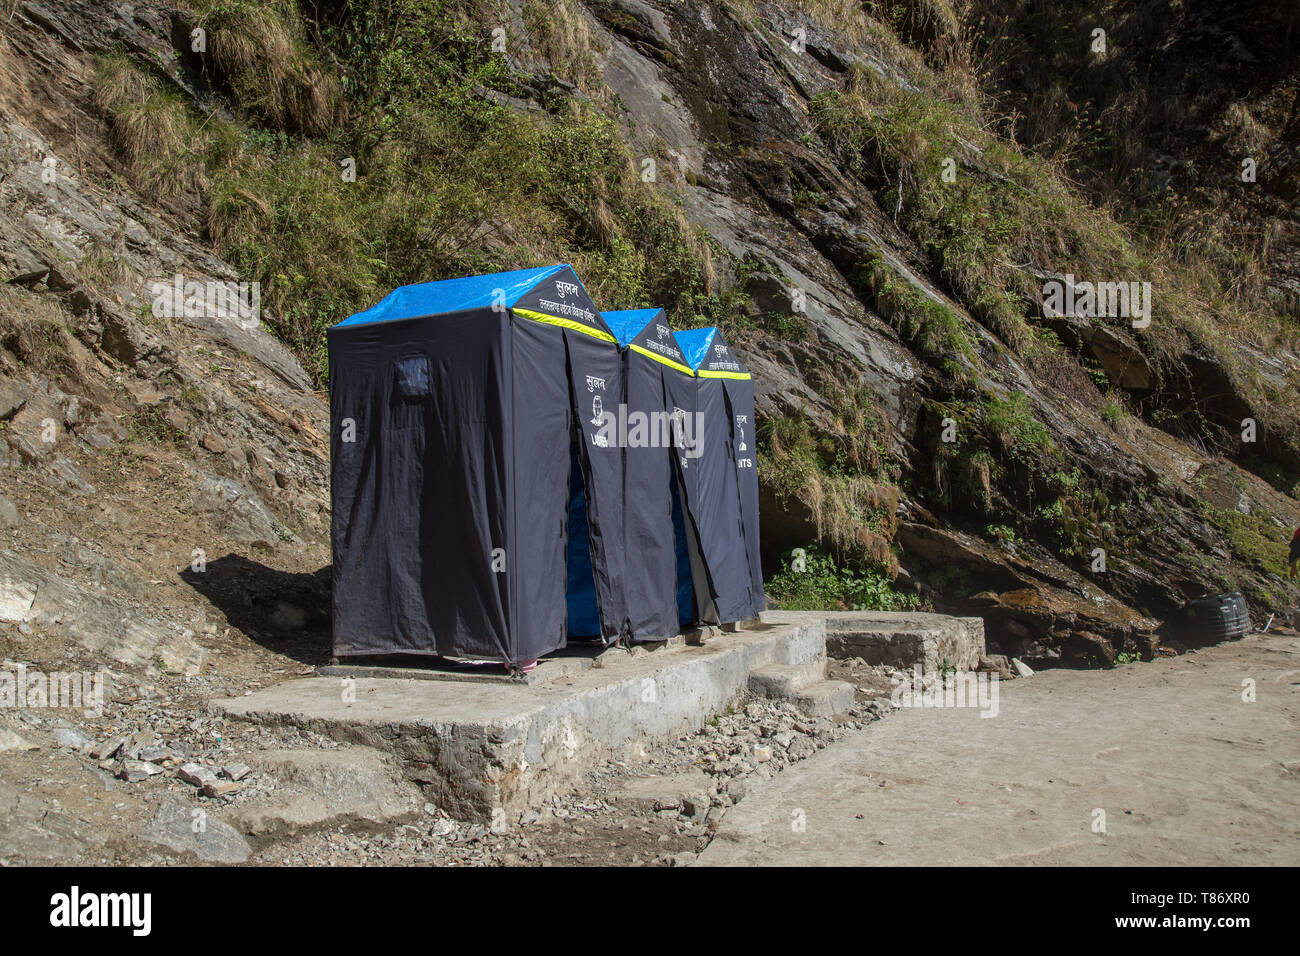 Toilet on the way in the valley of himalayan mountain for char dham yatra - Stock Image